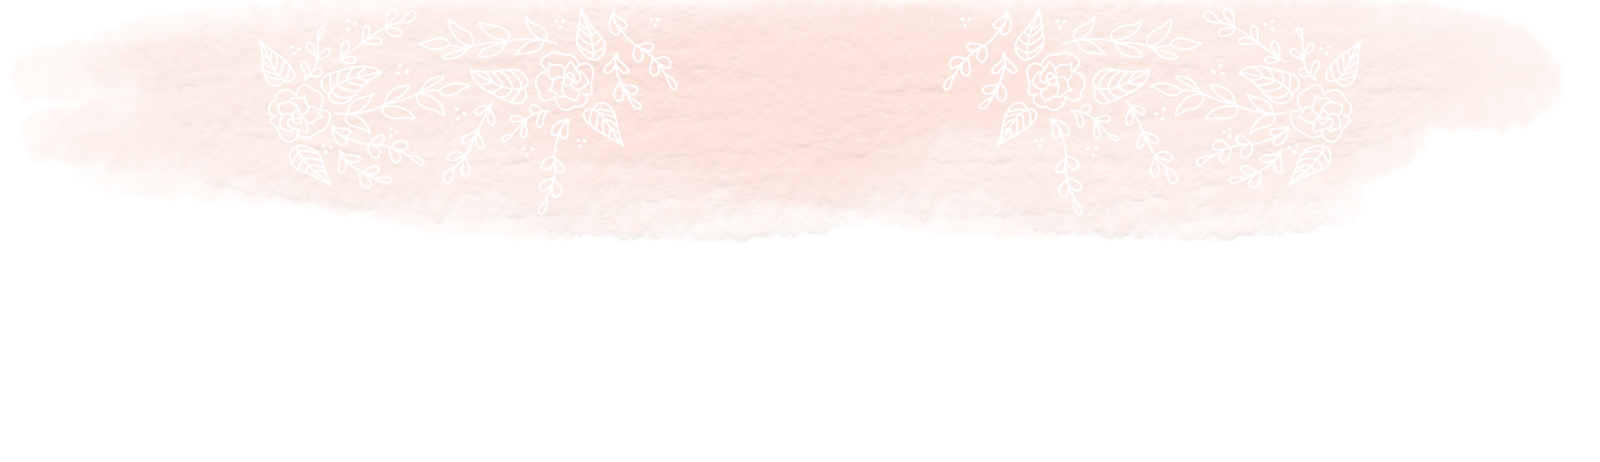 floral-header_whitebrush